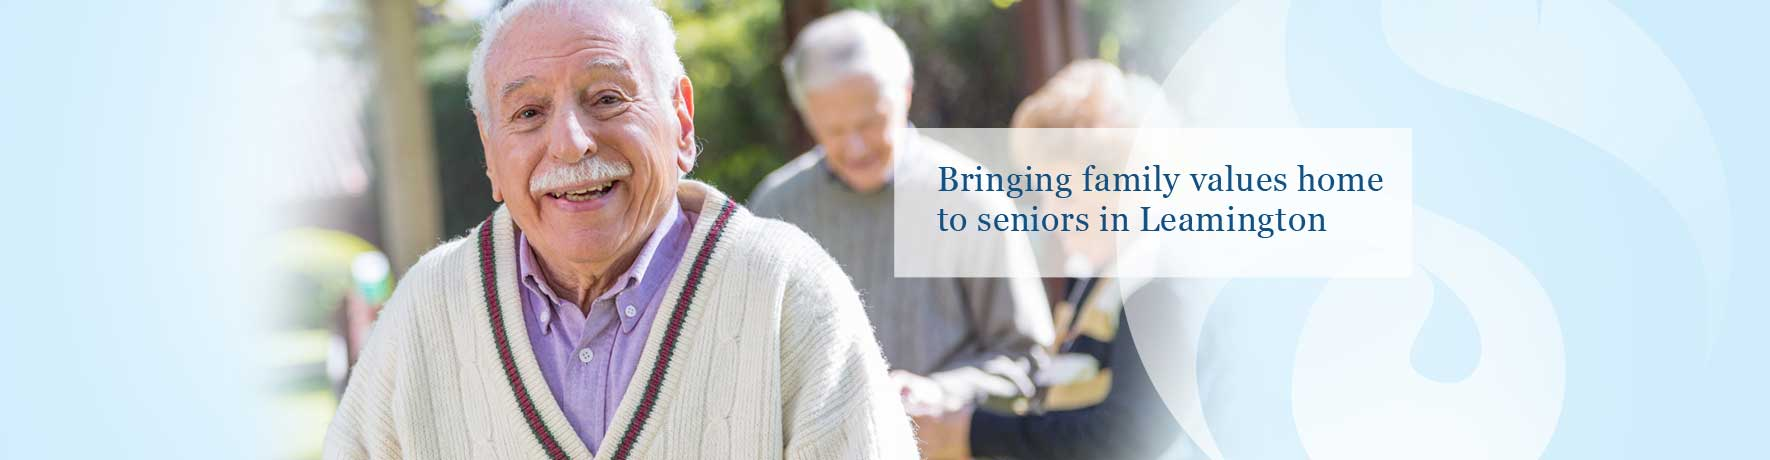 Bringing family values home to seniors in Leamington.